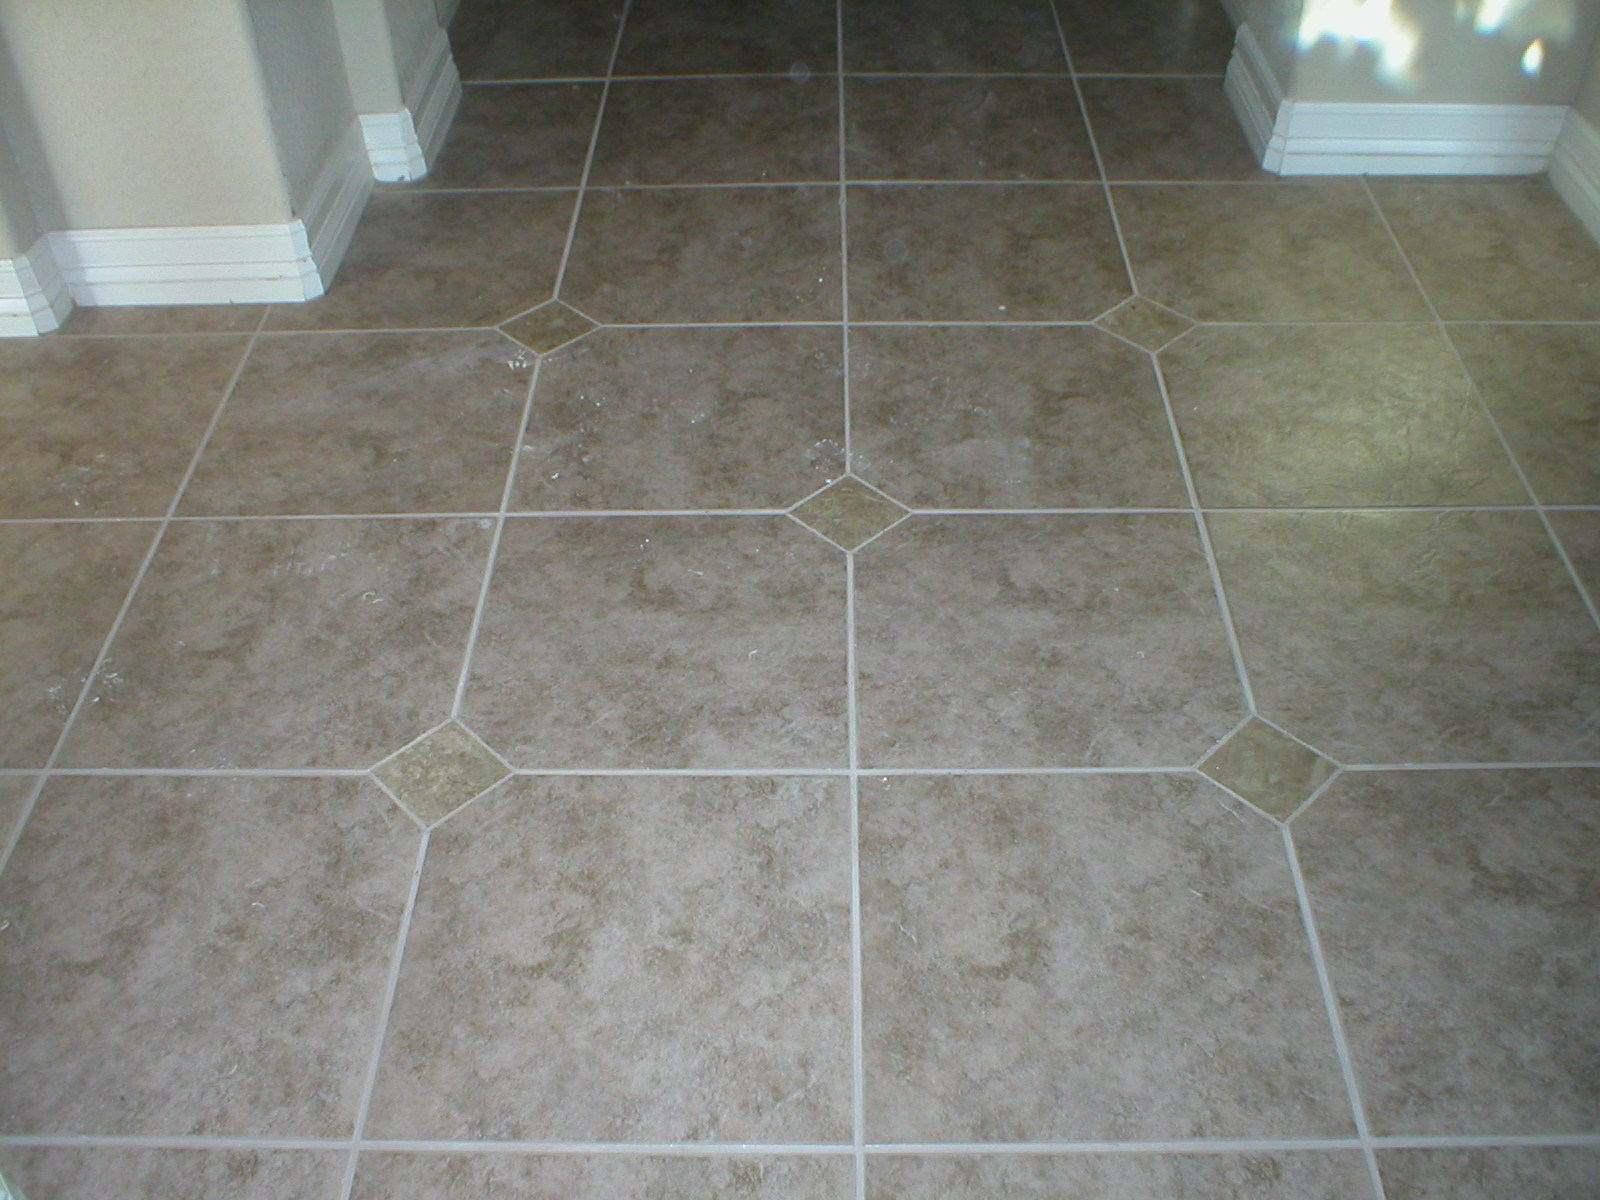 for floors and bathroom grant with stencil gray pretty just a relaxing pin done small paint days ideas weekend makeover weathered this be in colorful interior tile can white wall floor design